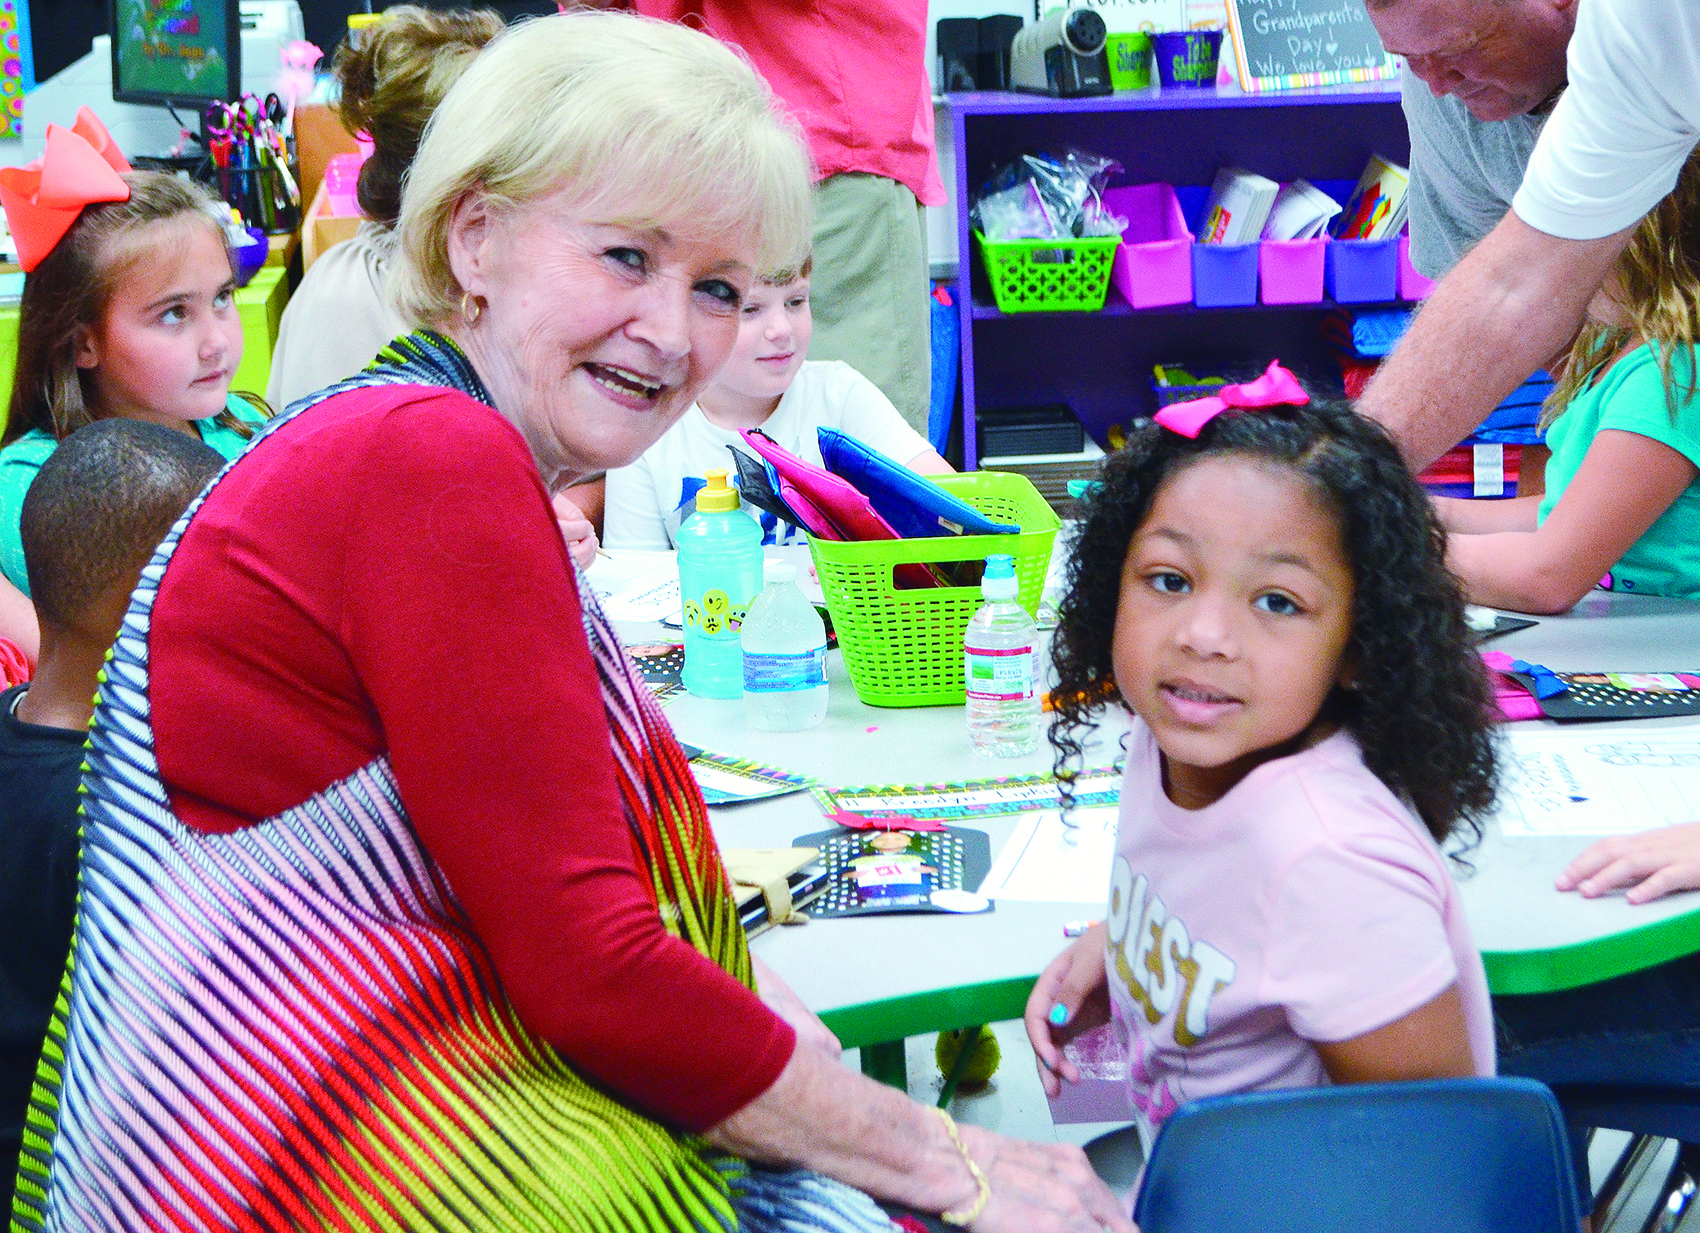 Grandparents spent time with their grandchildren at T.R. Simmons Elementary School on Friday, ahead of Grandparents Day, which is celebrated today. Schools across Walker County welcomed grandparents last week to enjoy lunch with their grandchildren or visit their classrooms.